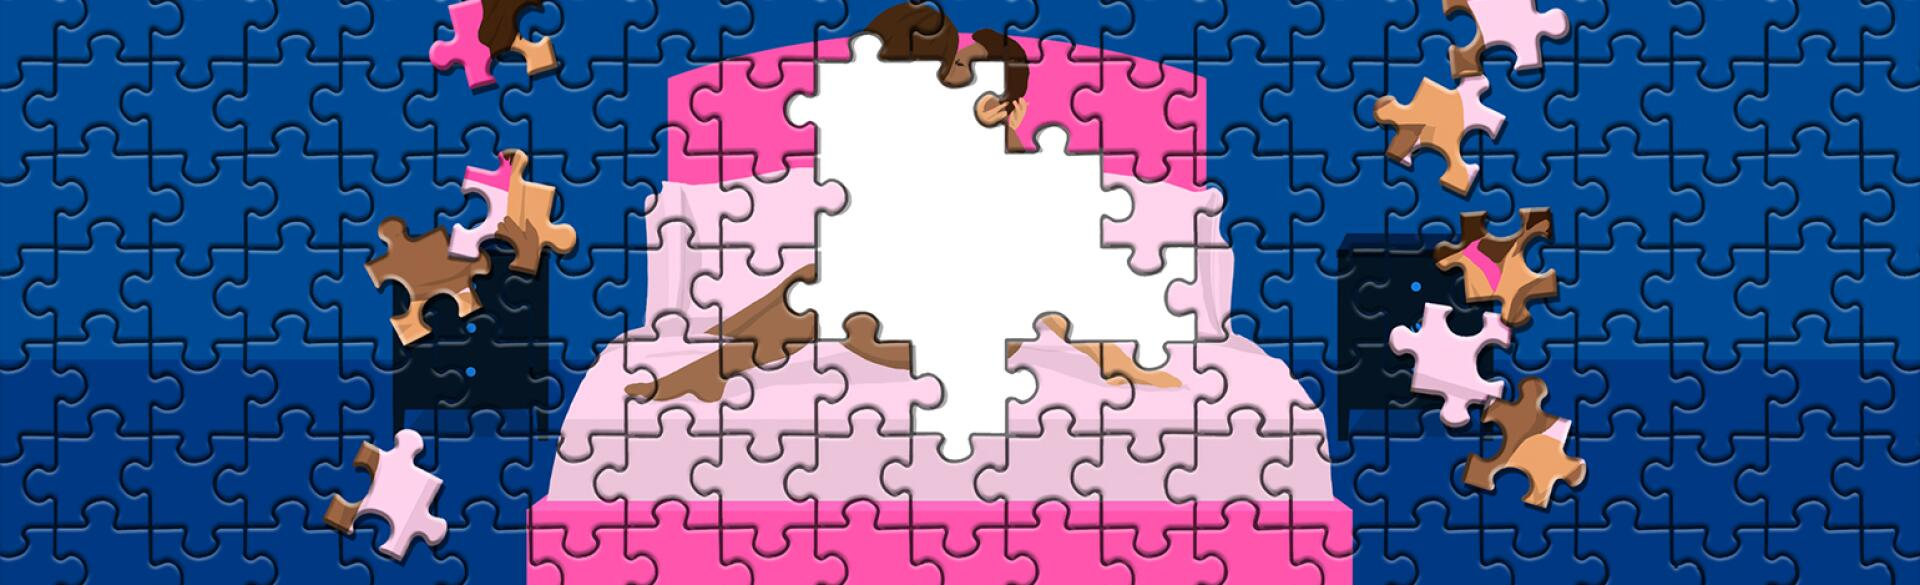 illustration of puzzle with couple making love on bed with pieces missing